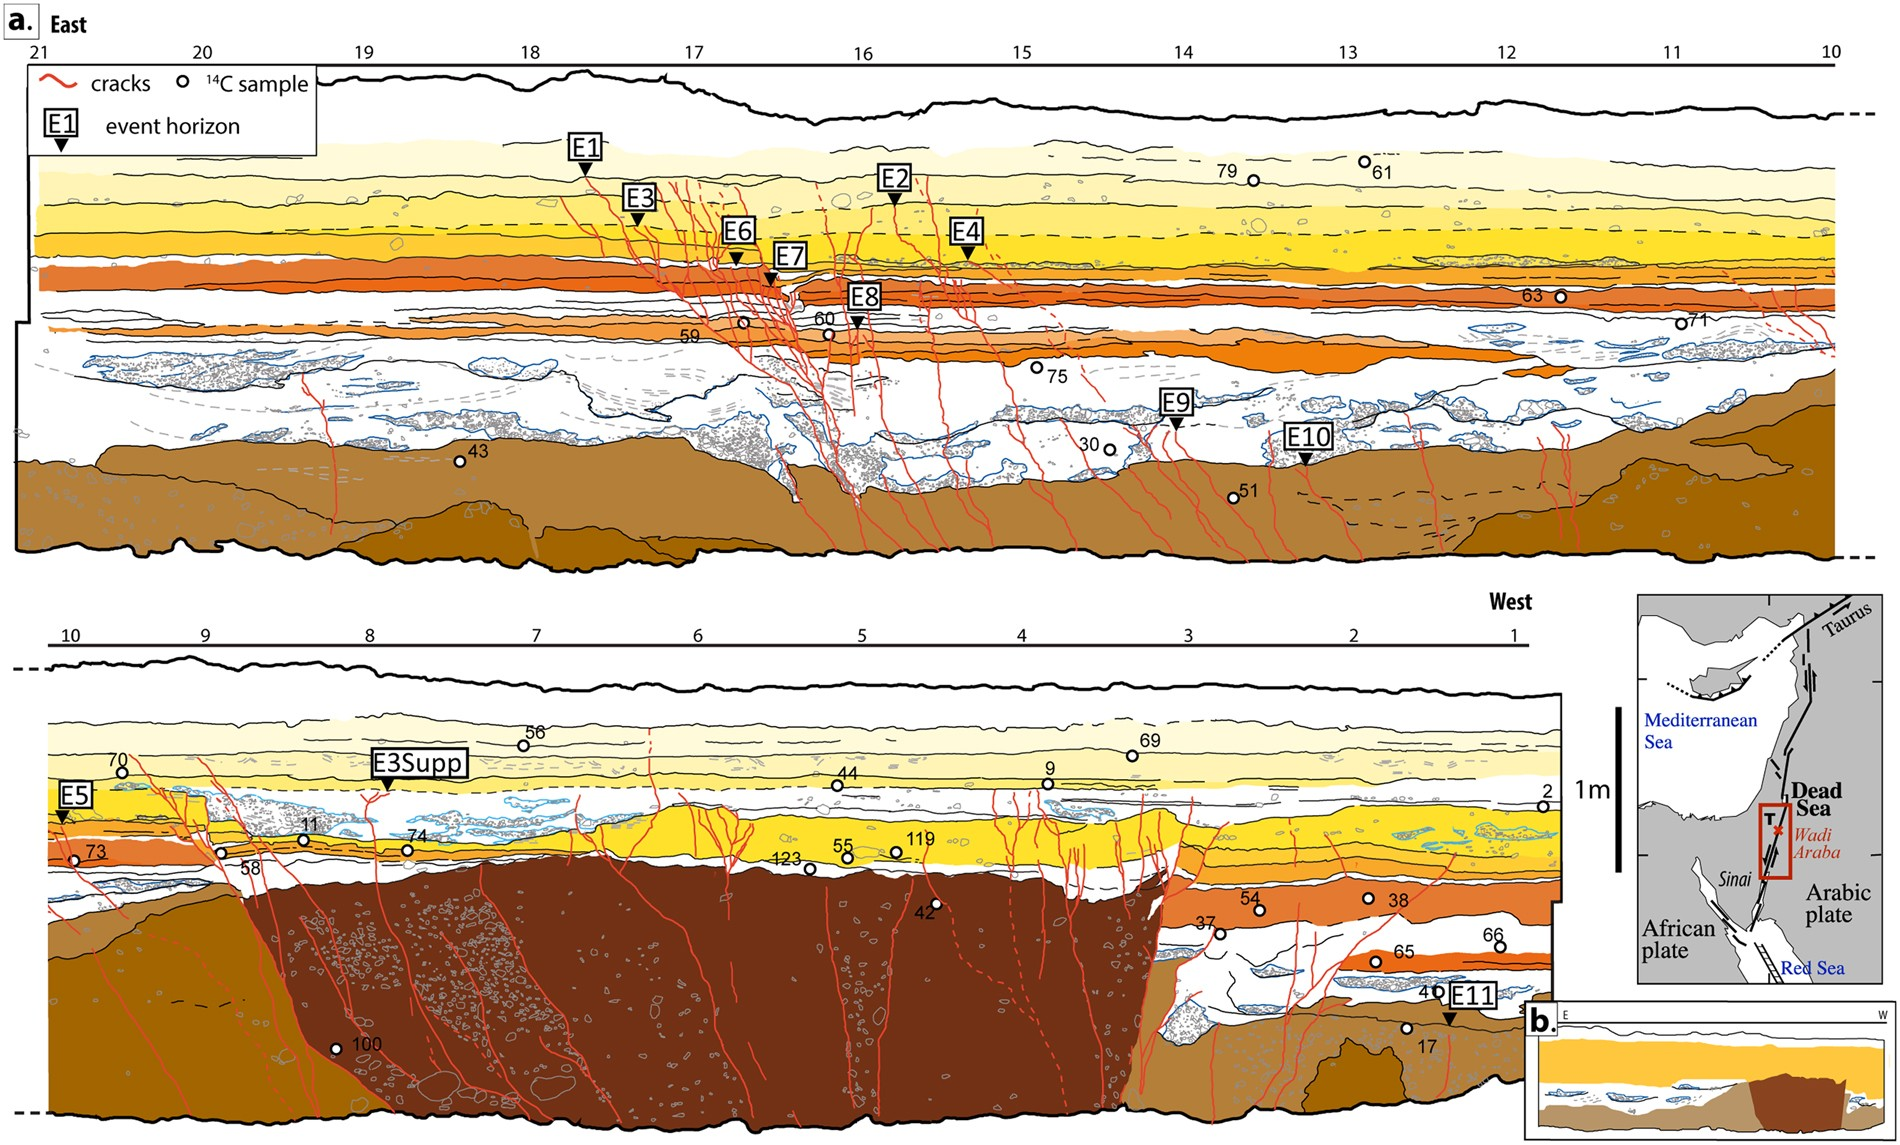 Slip deficit and temporal clustering along the Dead Sea fault from